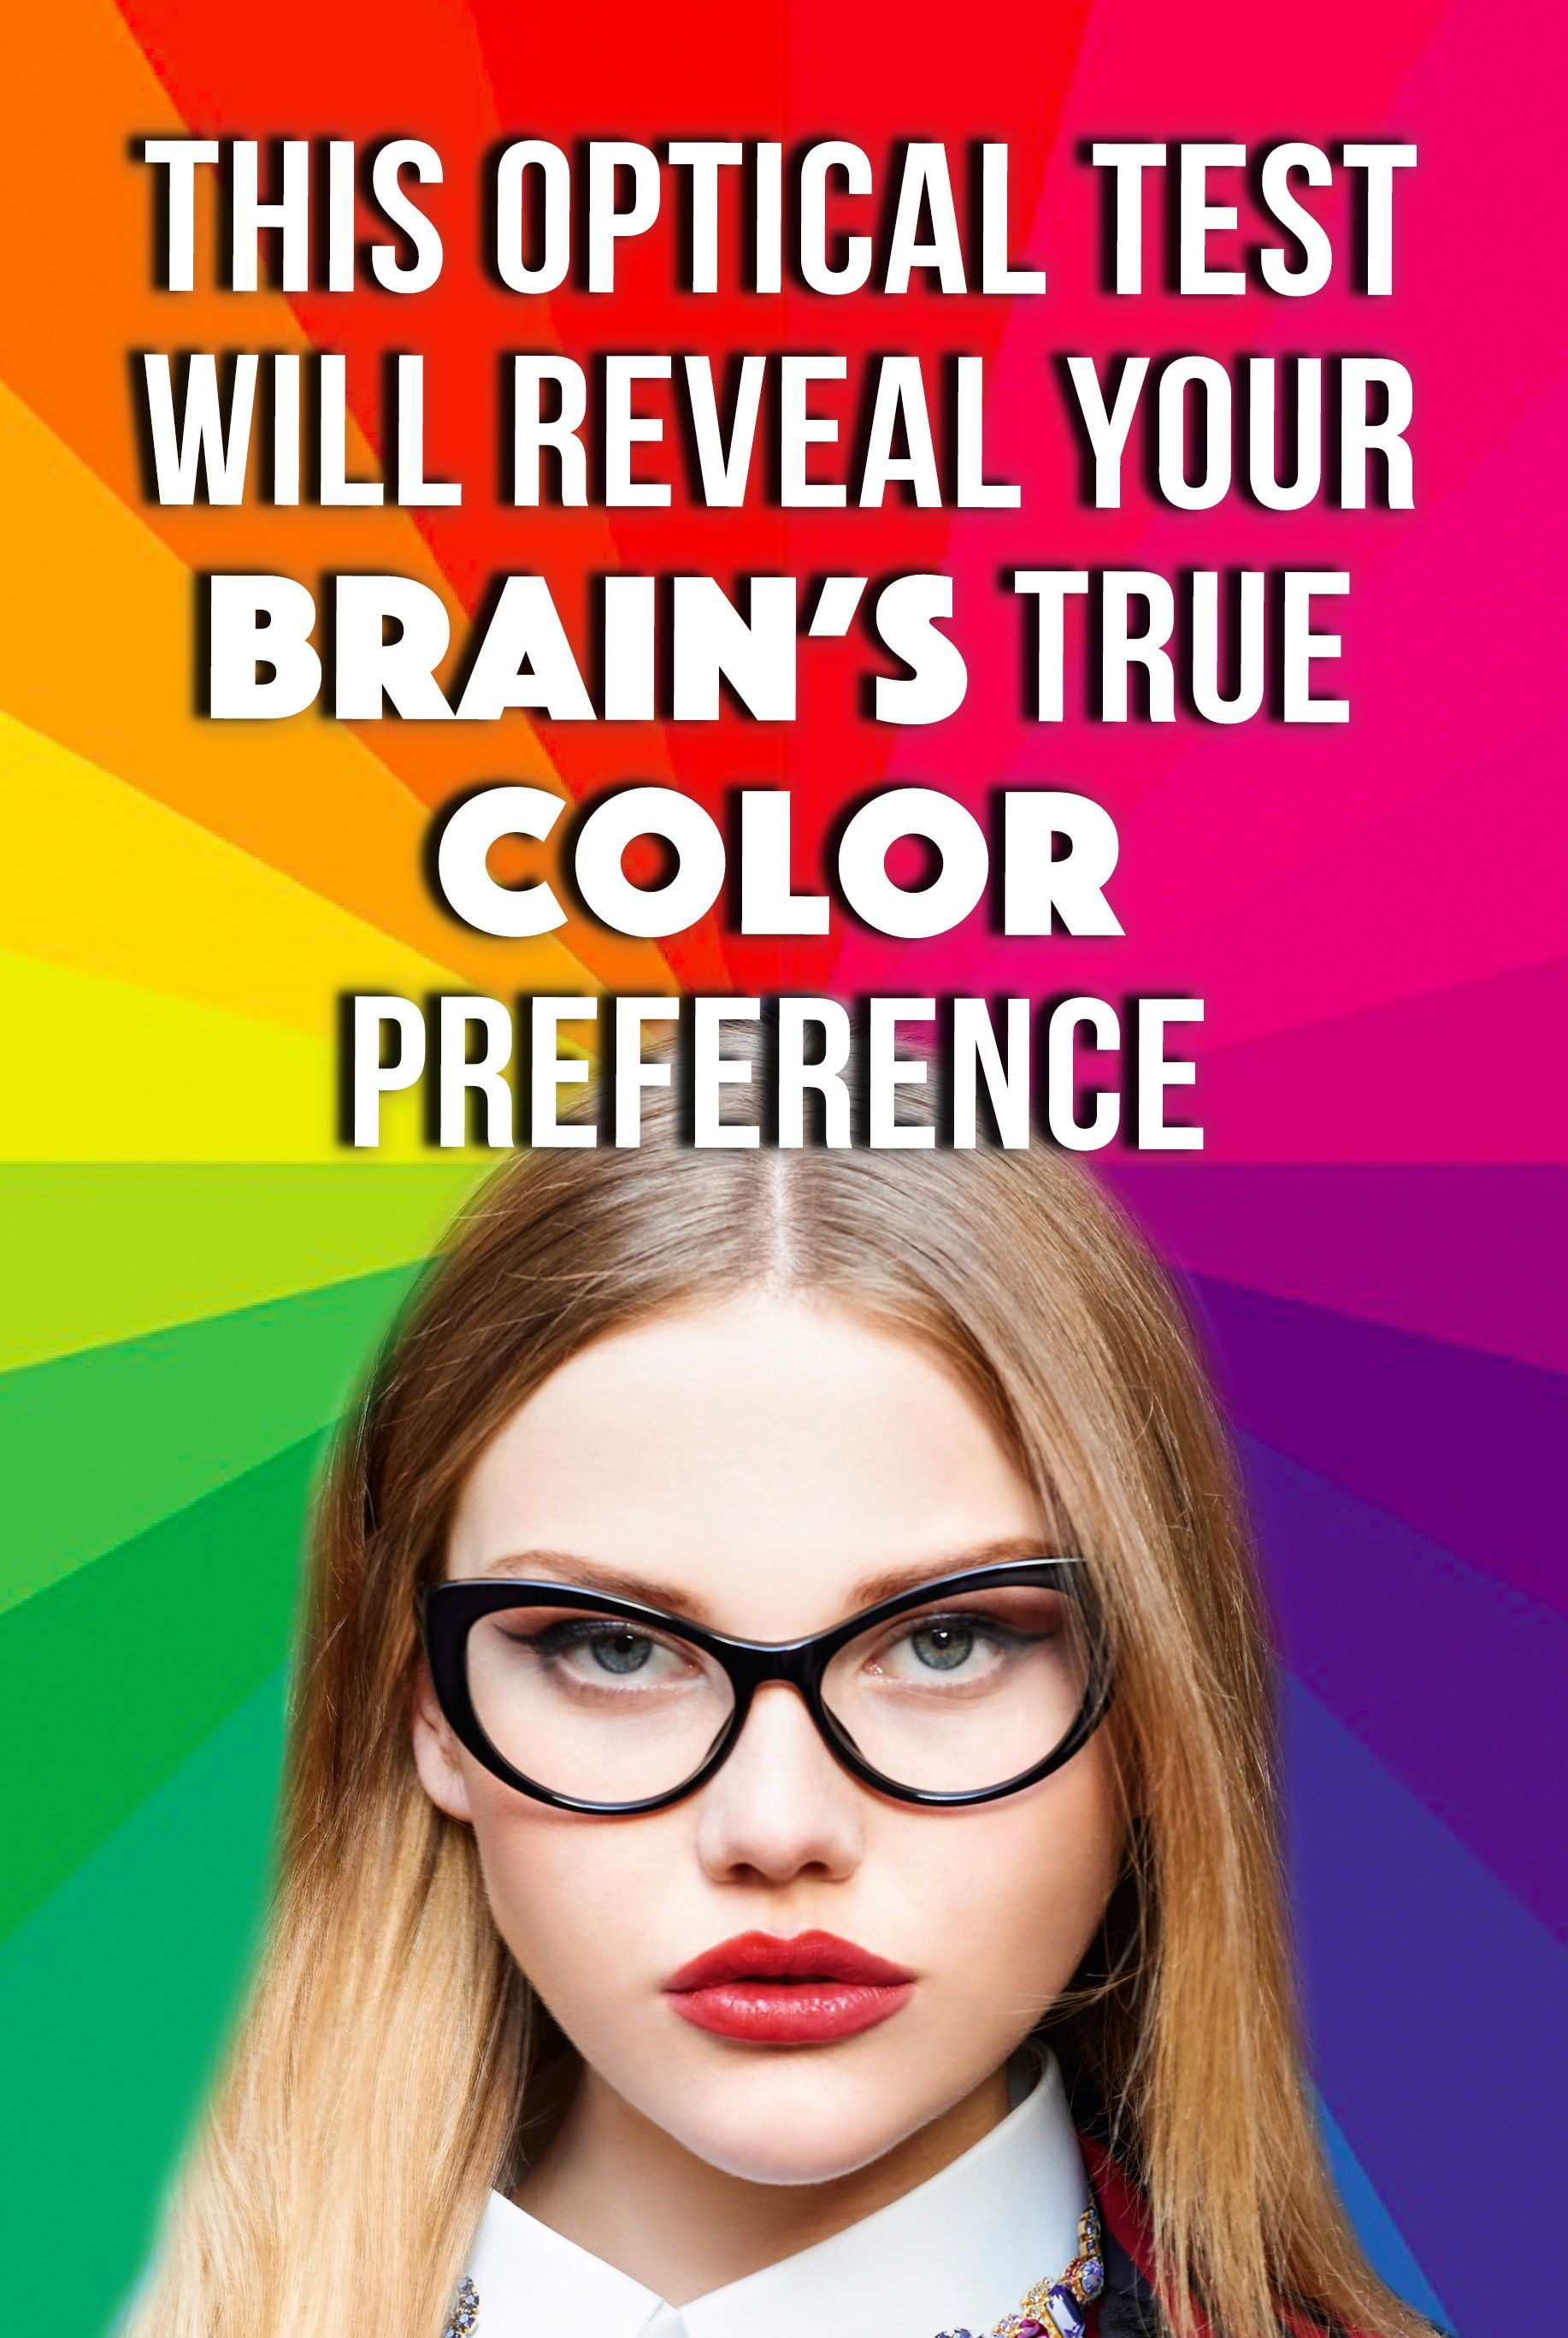 Quiz: This Optical Test Will Reveal Your Brain's True Color